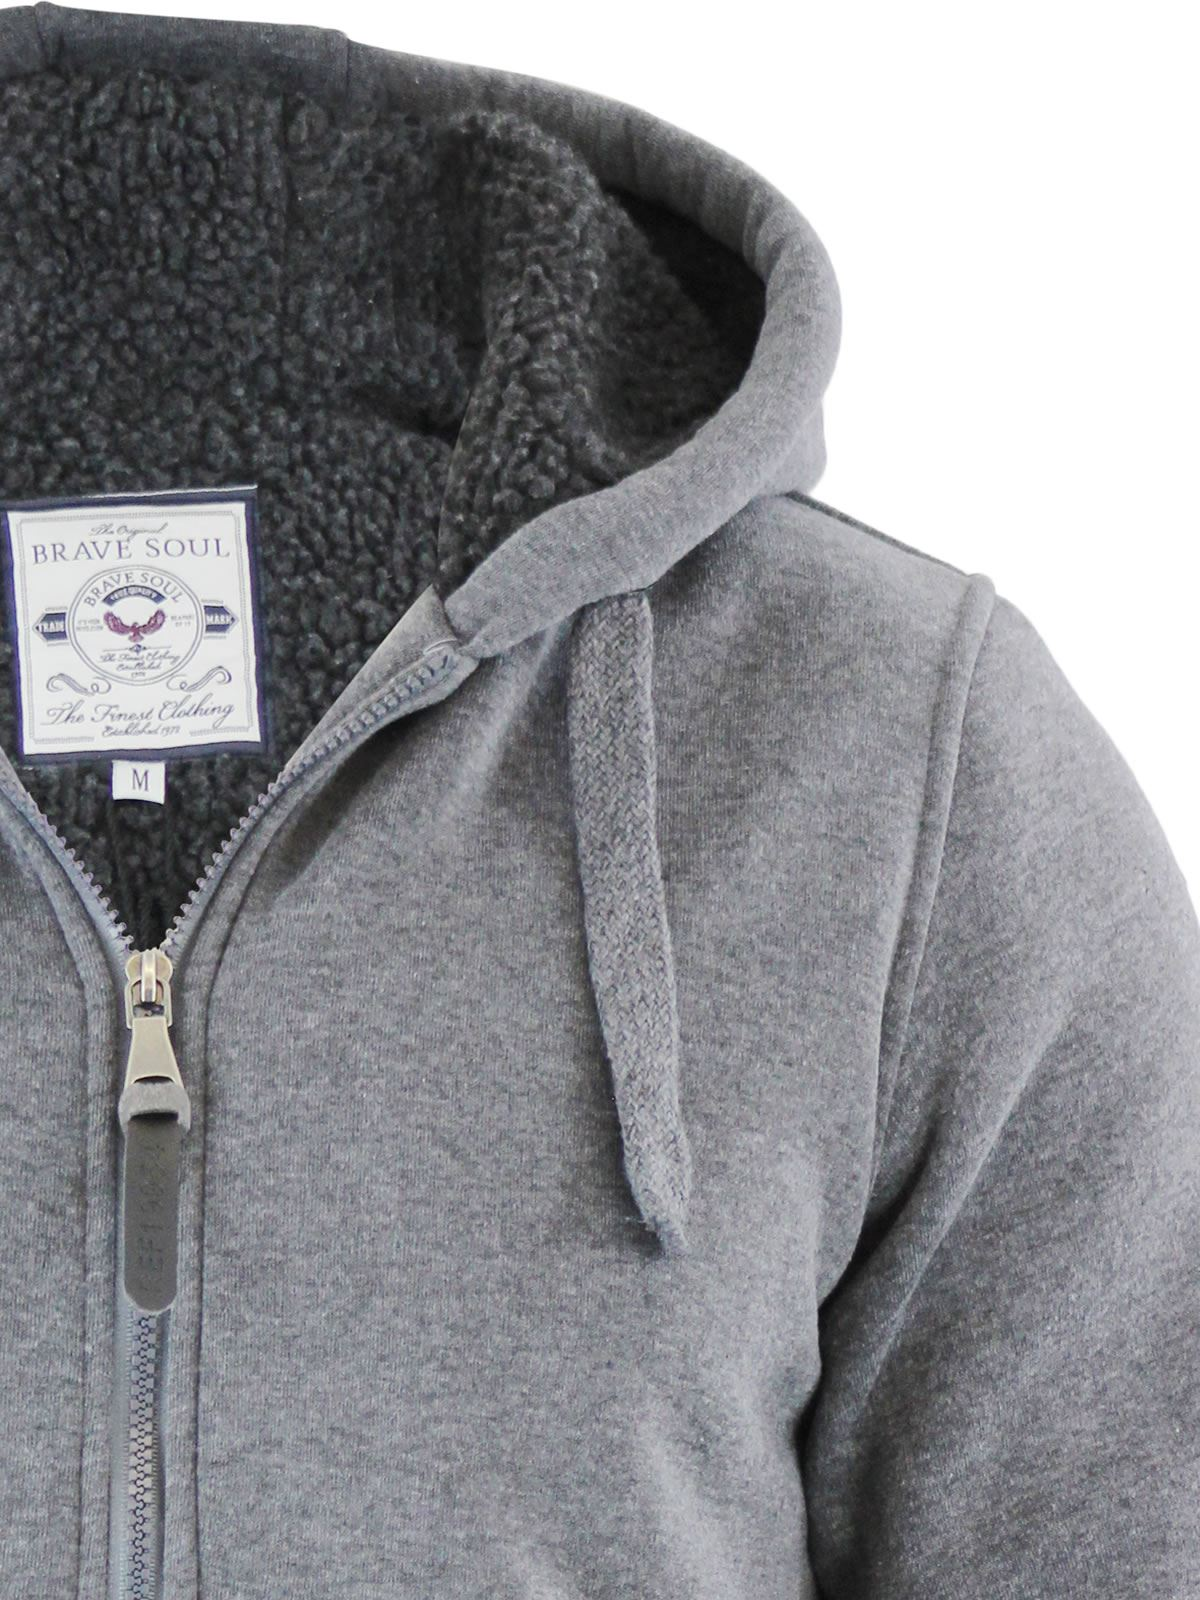 Mens-Hoodie-Brave-Soul-Zone-Sherpa-Fleece-Lined-Zip-Up-Hooded-Sweater thumbnail 10